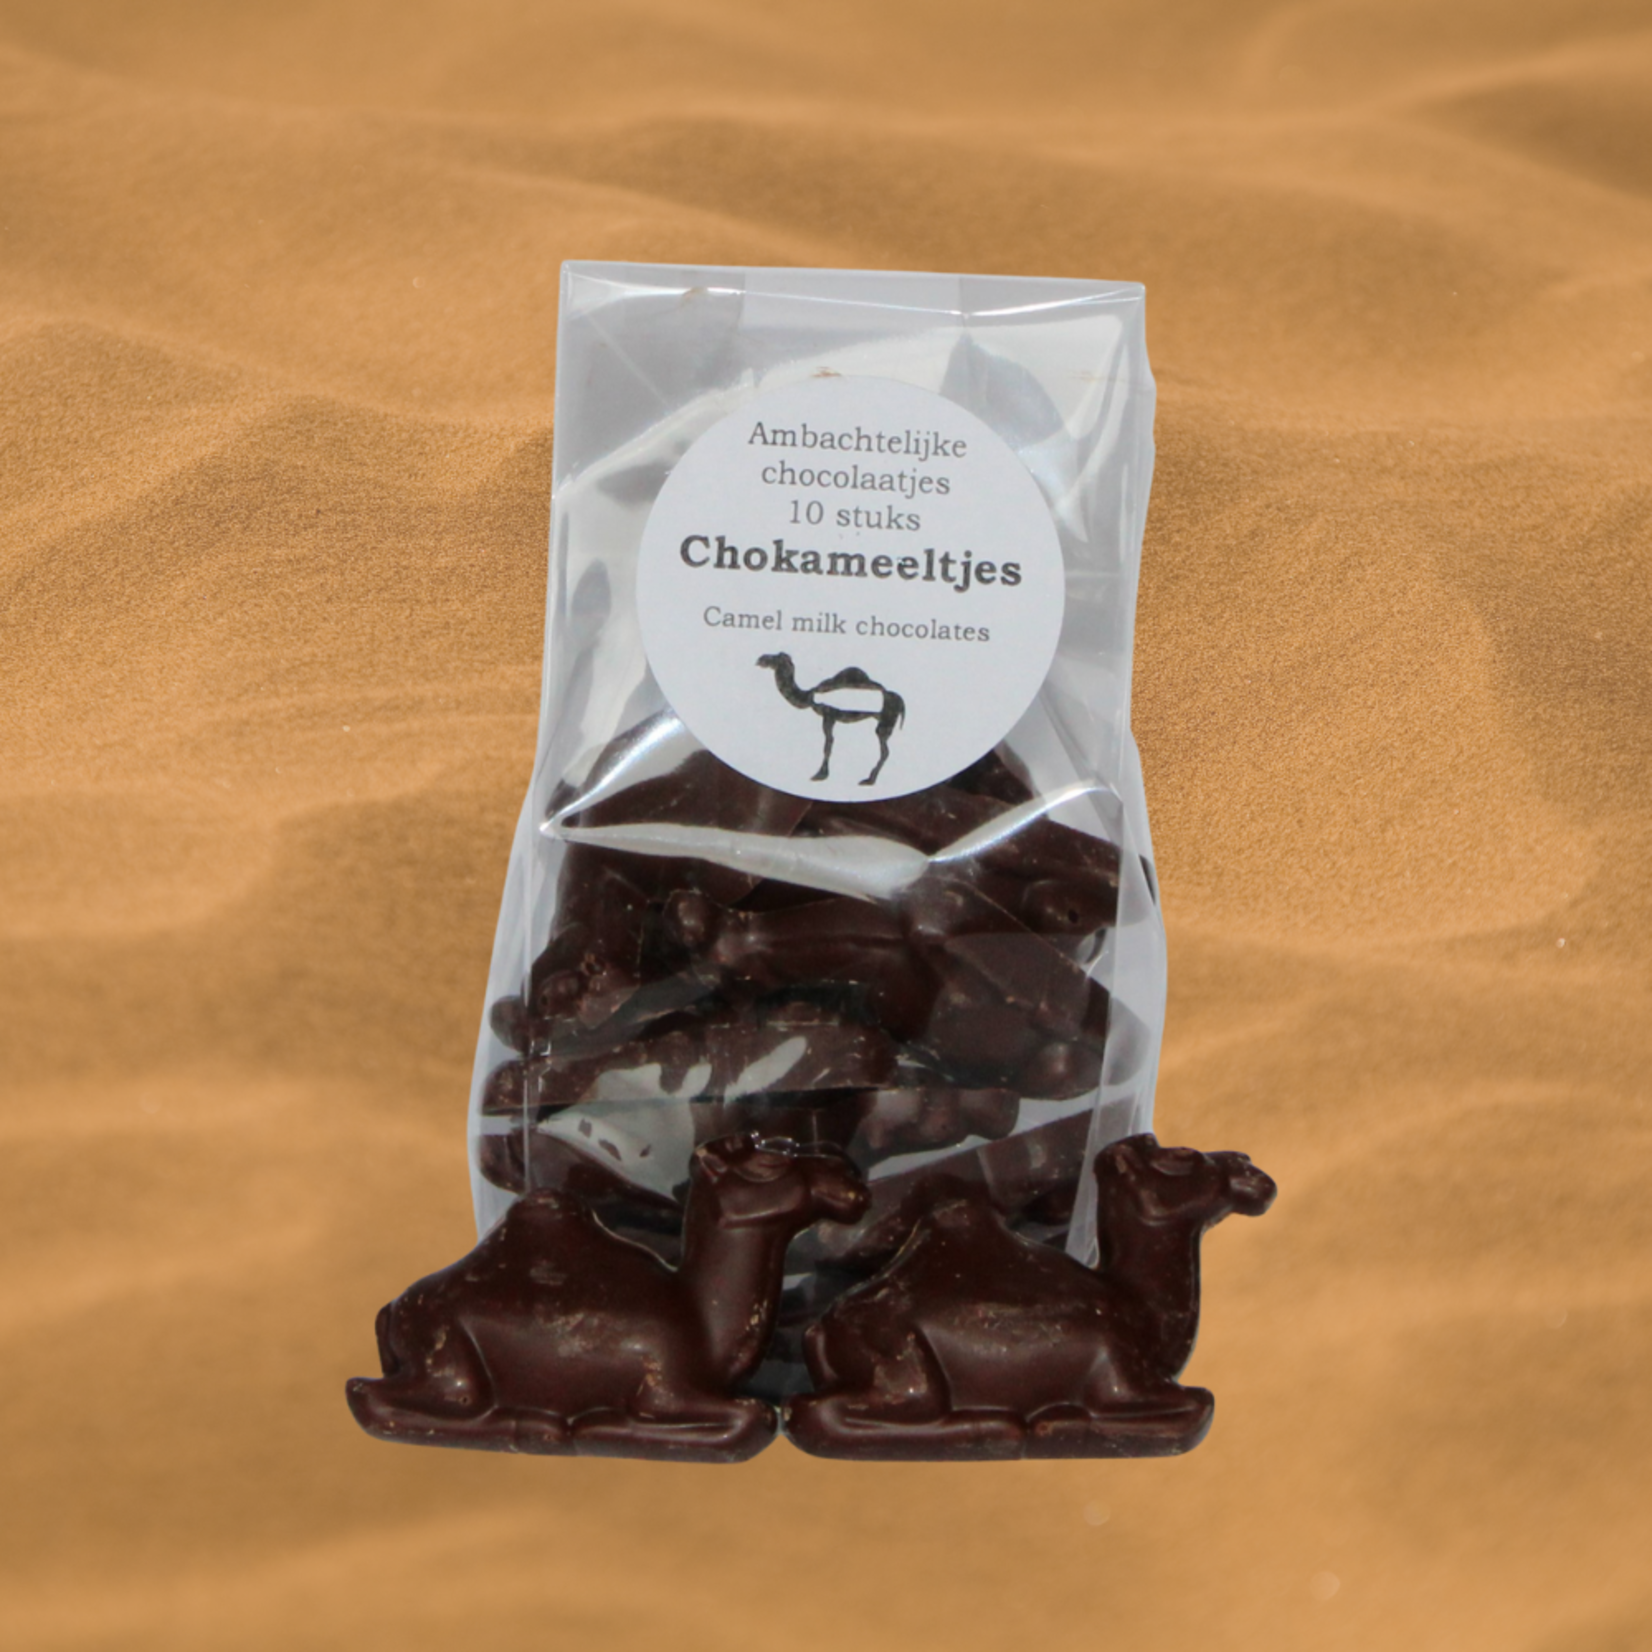 Dutch Oasis ChoCamels - Chocolates made with camel milk, in the shape of a camel